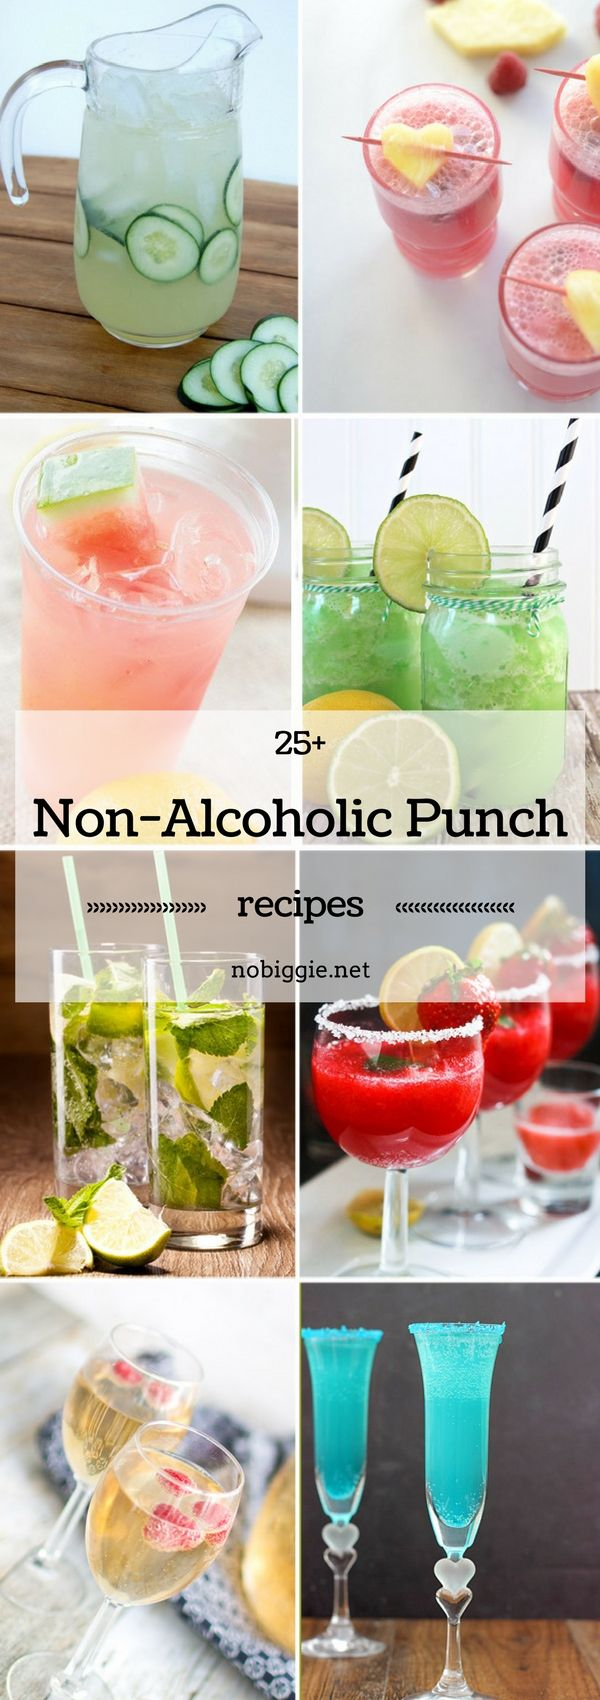 25+ Non-Alcoholic Punch Recipes | NoBiggie.net